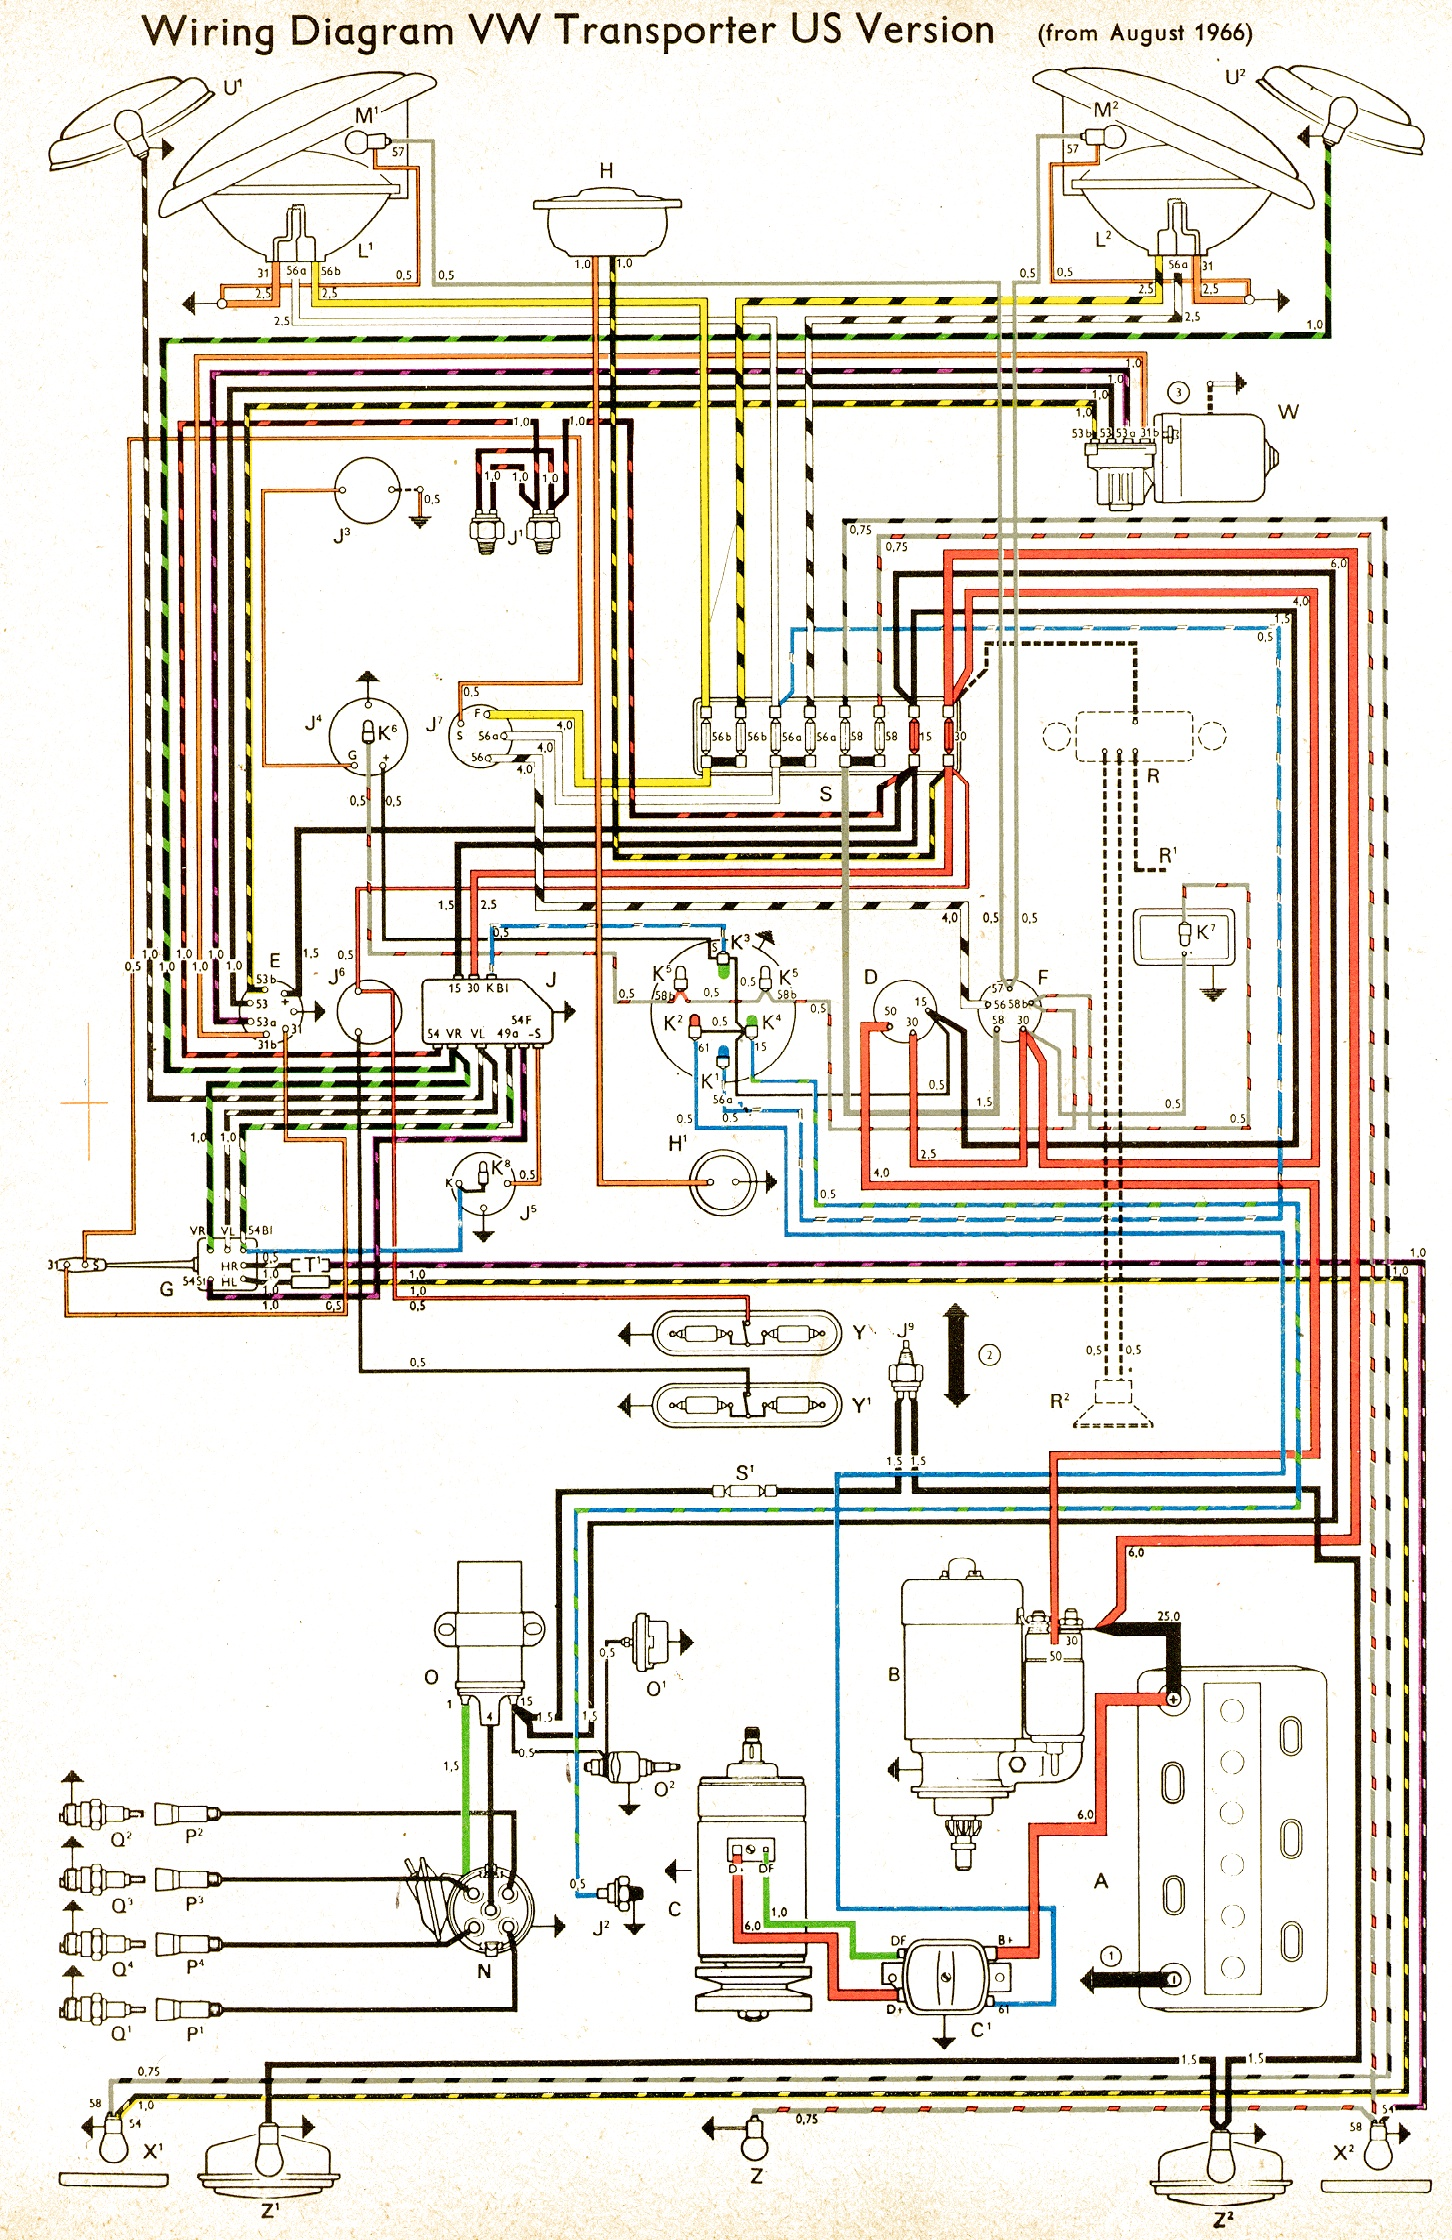 bus 66 usa vw bus wiring diagram 1965 vw bus wiring diagram \u2022 wiring diagrams Fog Light Wiring Diagram at readyjetset.co